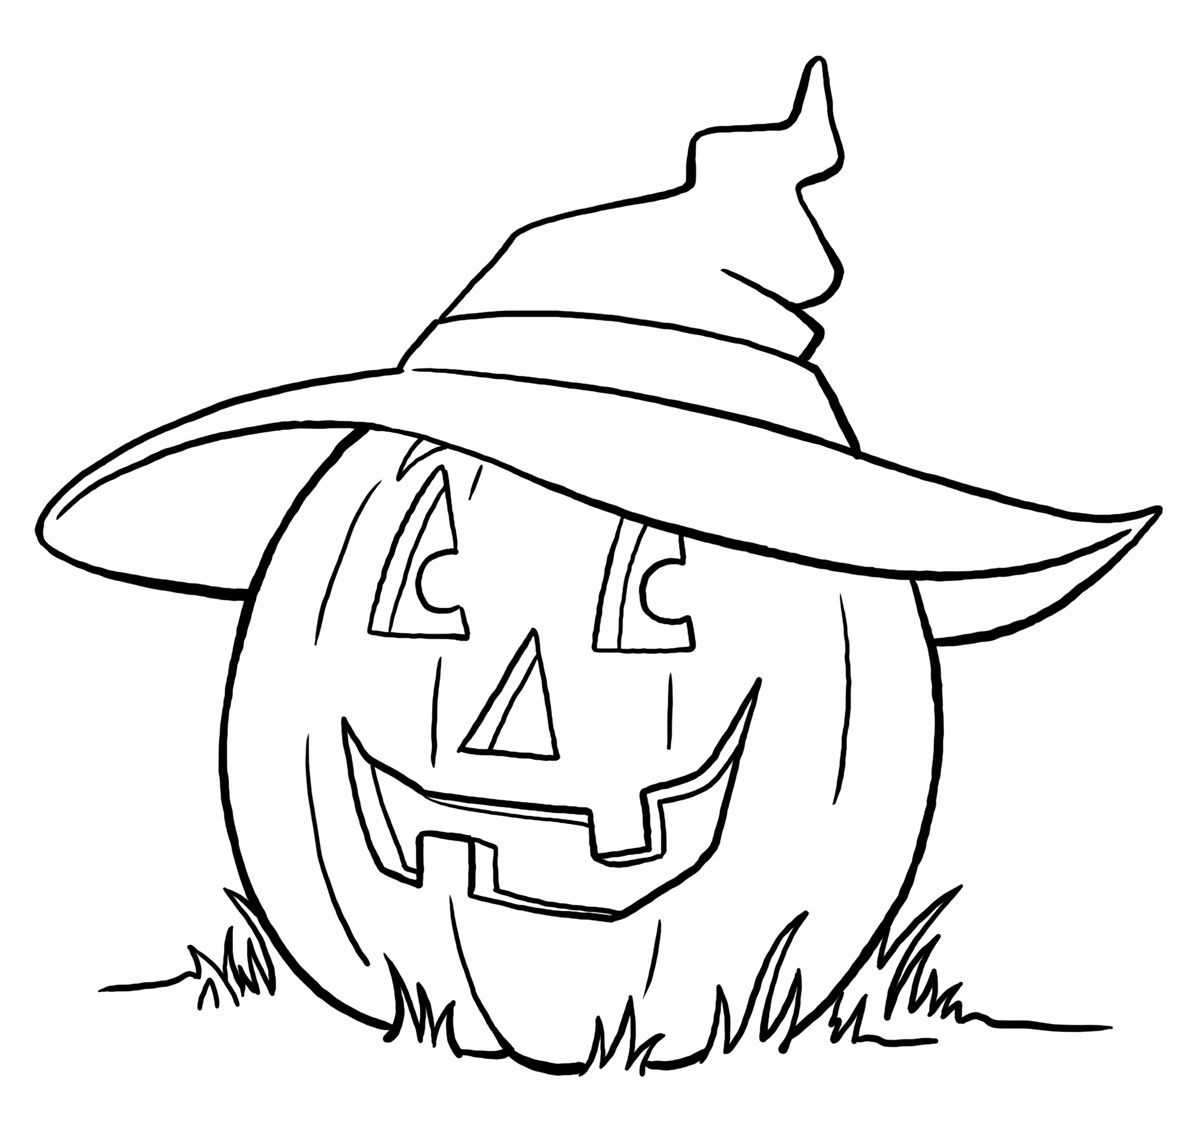 Halloween Pumpkin Coloring Pages Jacko'lantern  Halloween 2  Pinterest